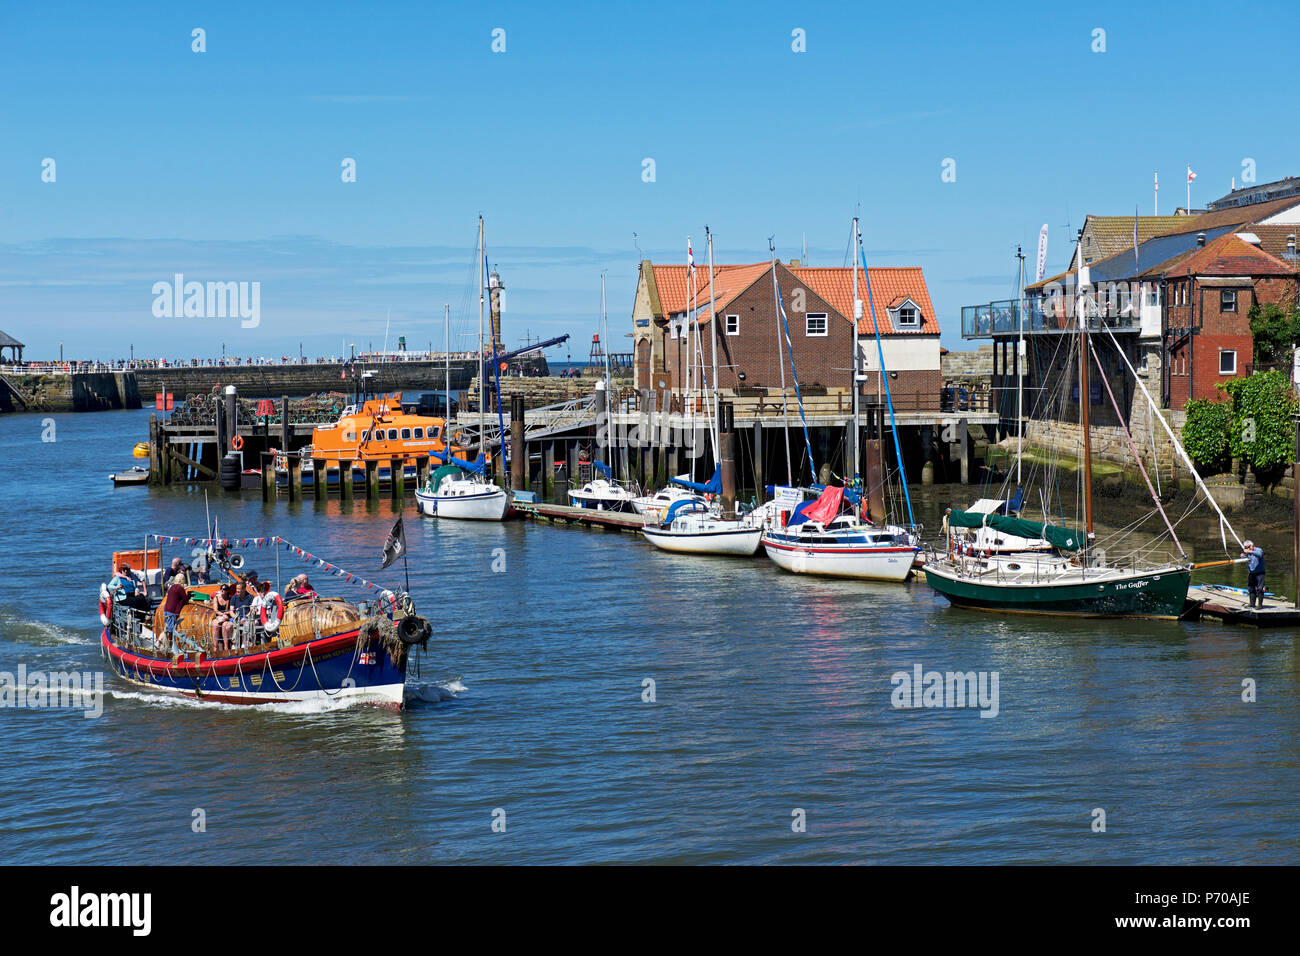 Old lifeboat used for boat trips, Whitby, North Yorkshire, England UK - Stock Image